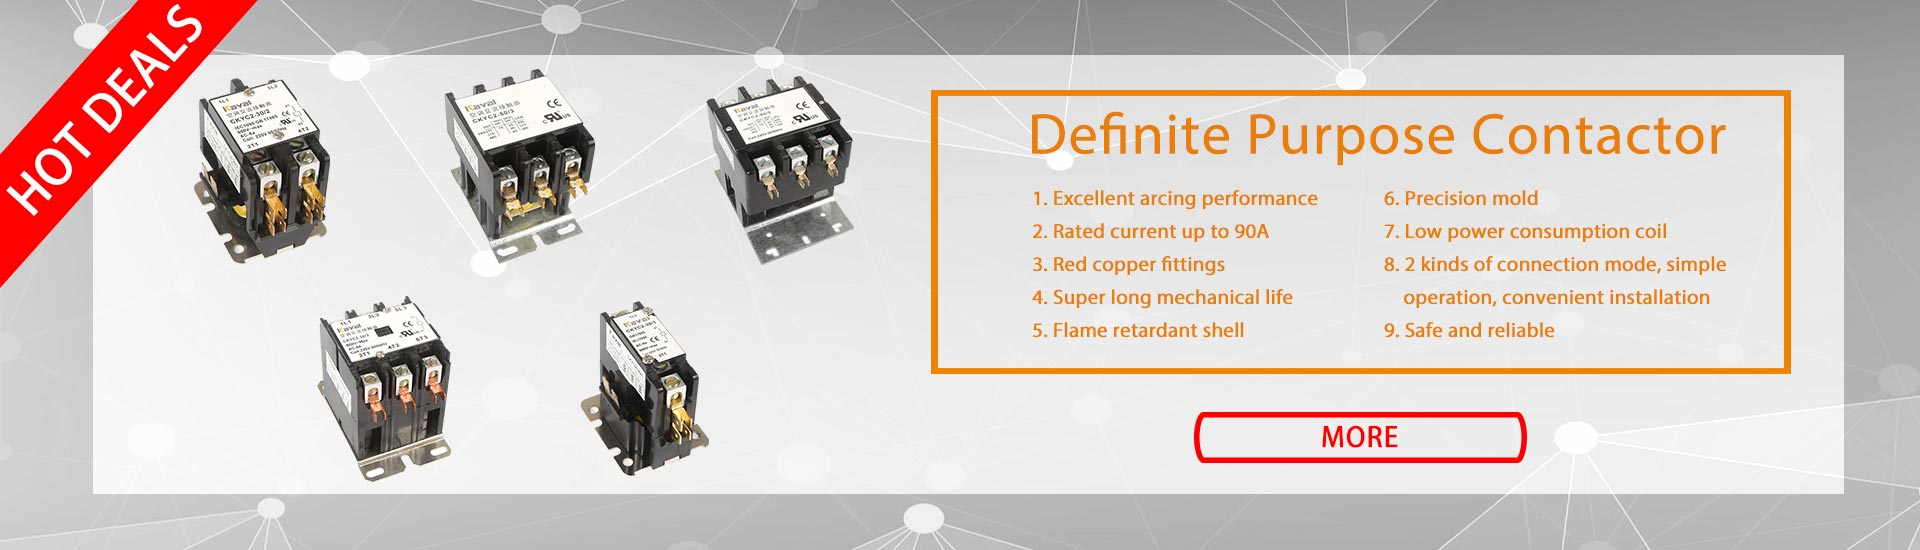 Definite Purpose Contactor